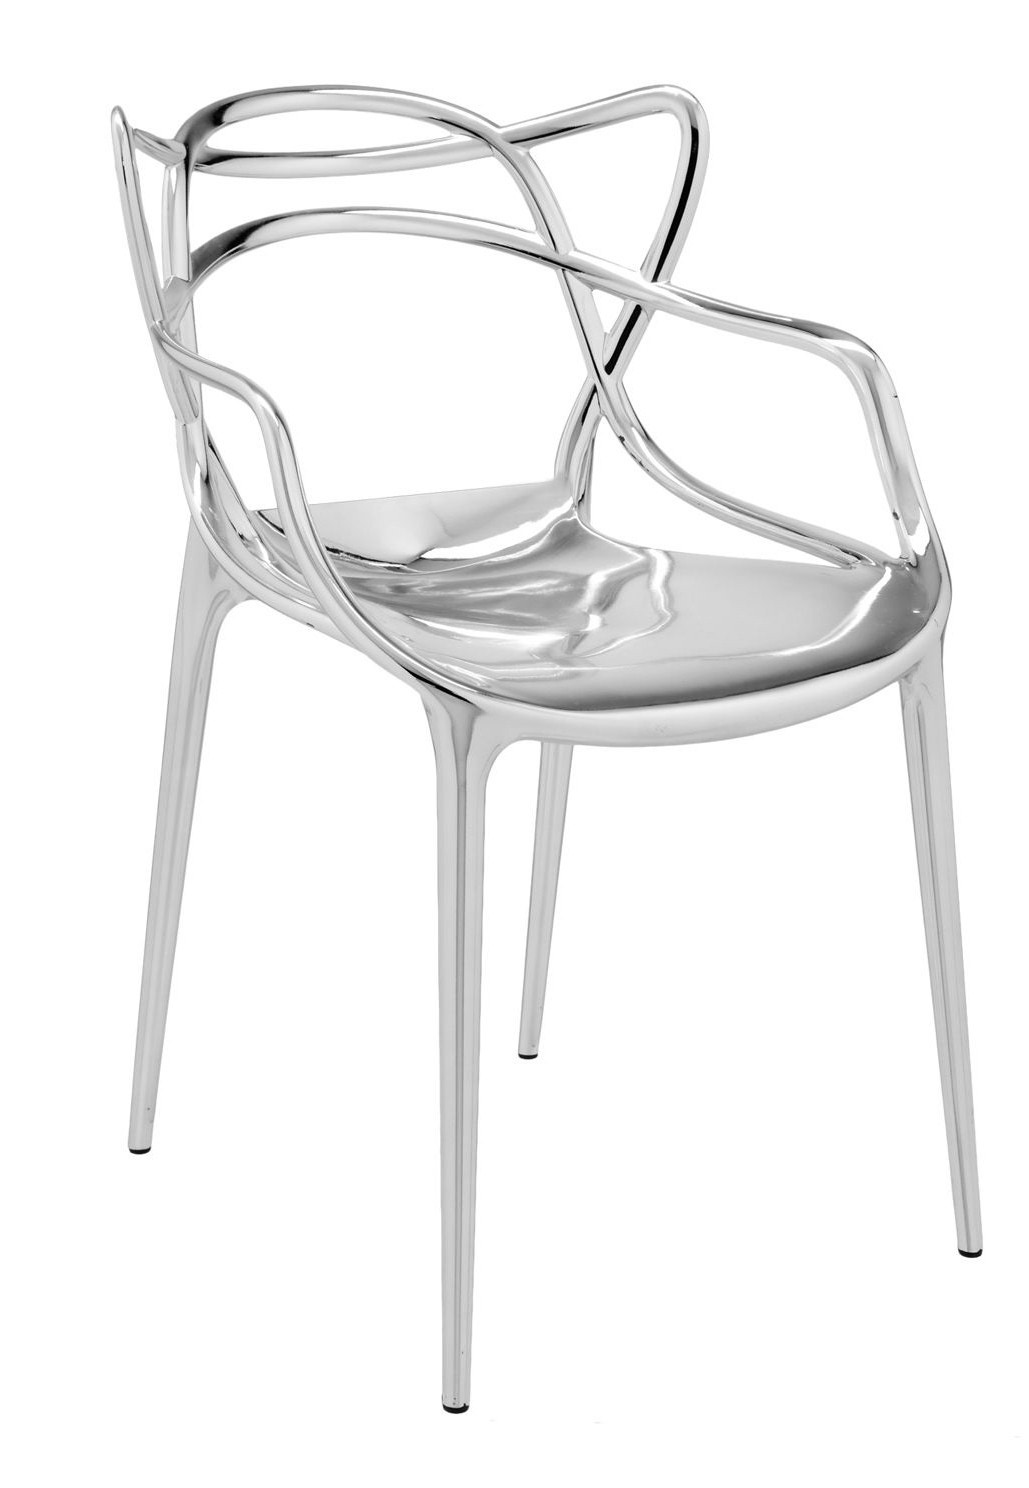 Ordinaire Kartell Masters Metallic Armchair (Priced Each, Sold In Sets Of 2)   Modern  Planet